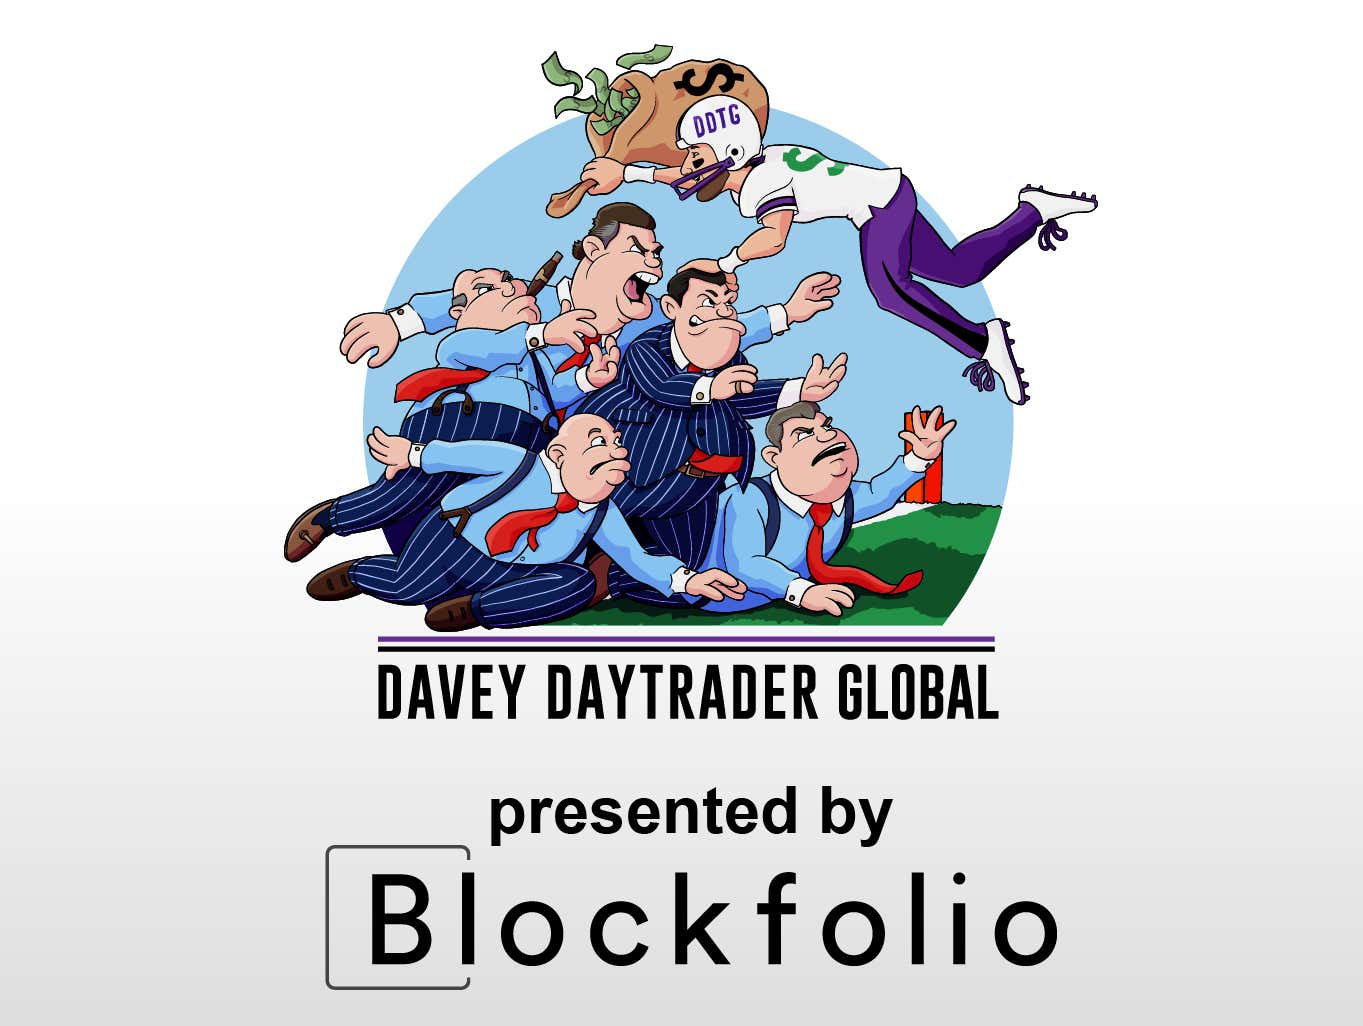 Davey Day Trader presented by Blockfolio - May 14, 2021